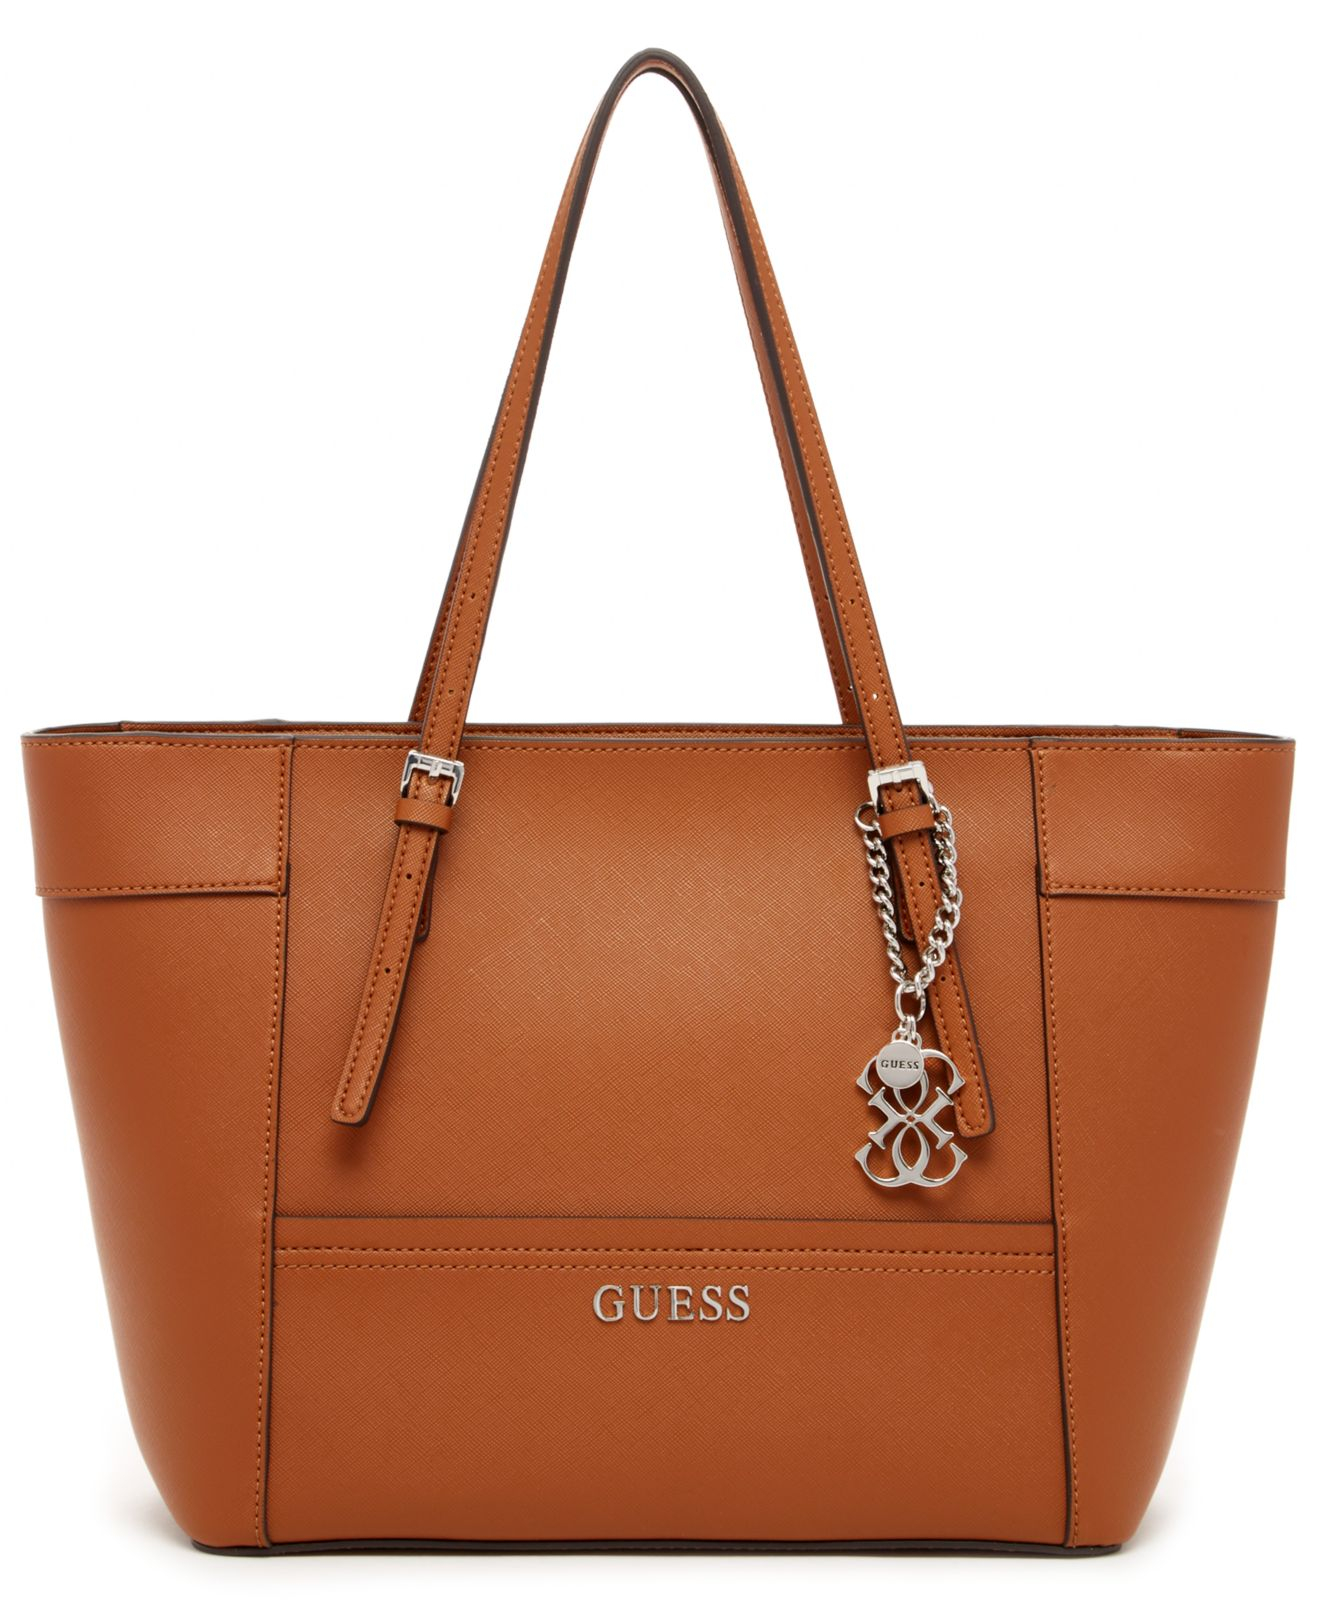 Guess Delaney Small Classic Tote in Brown (Cognac)